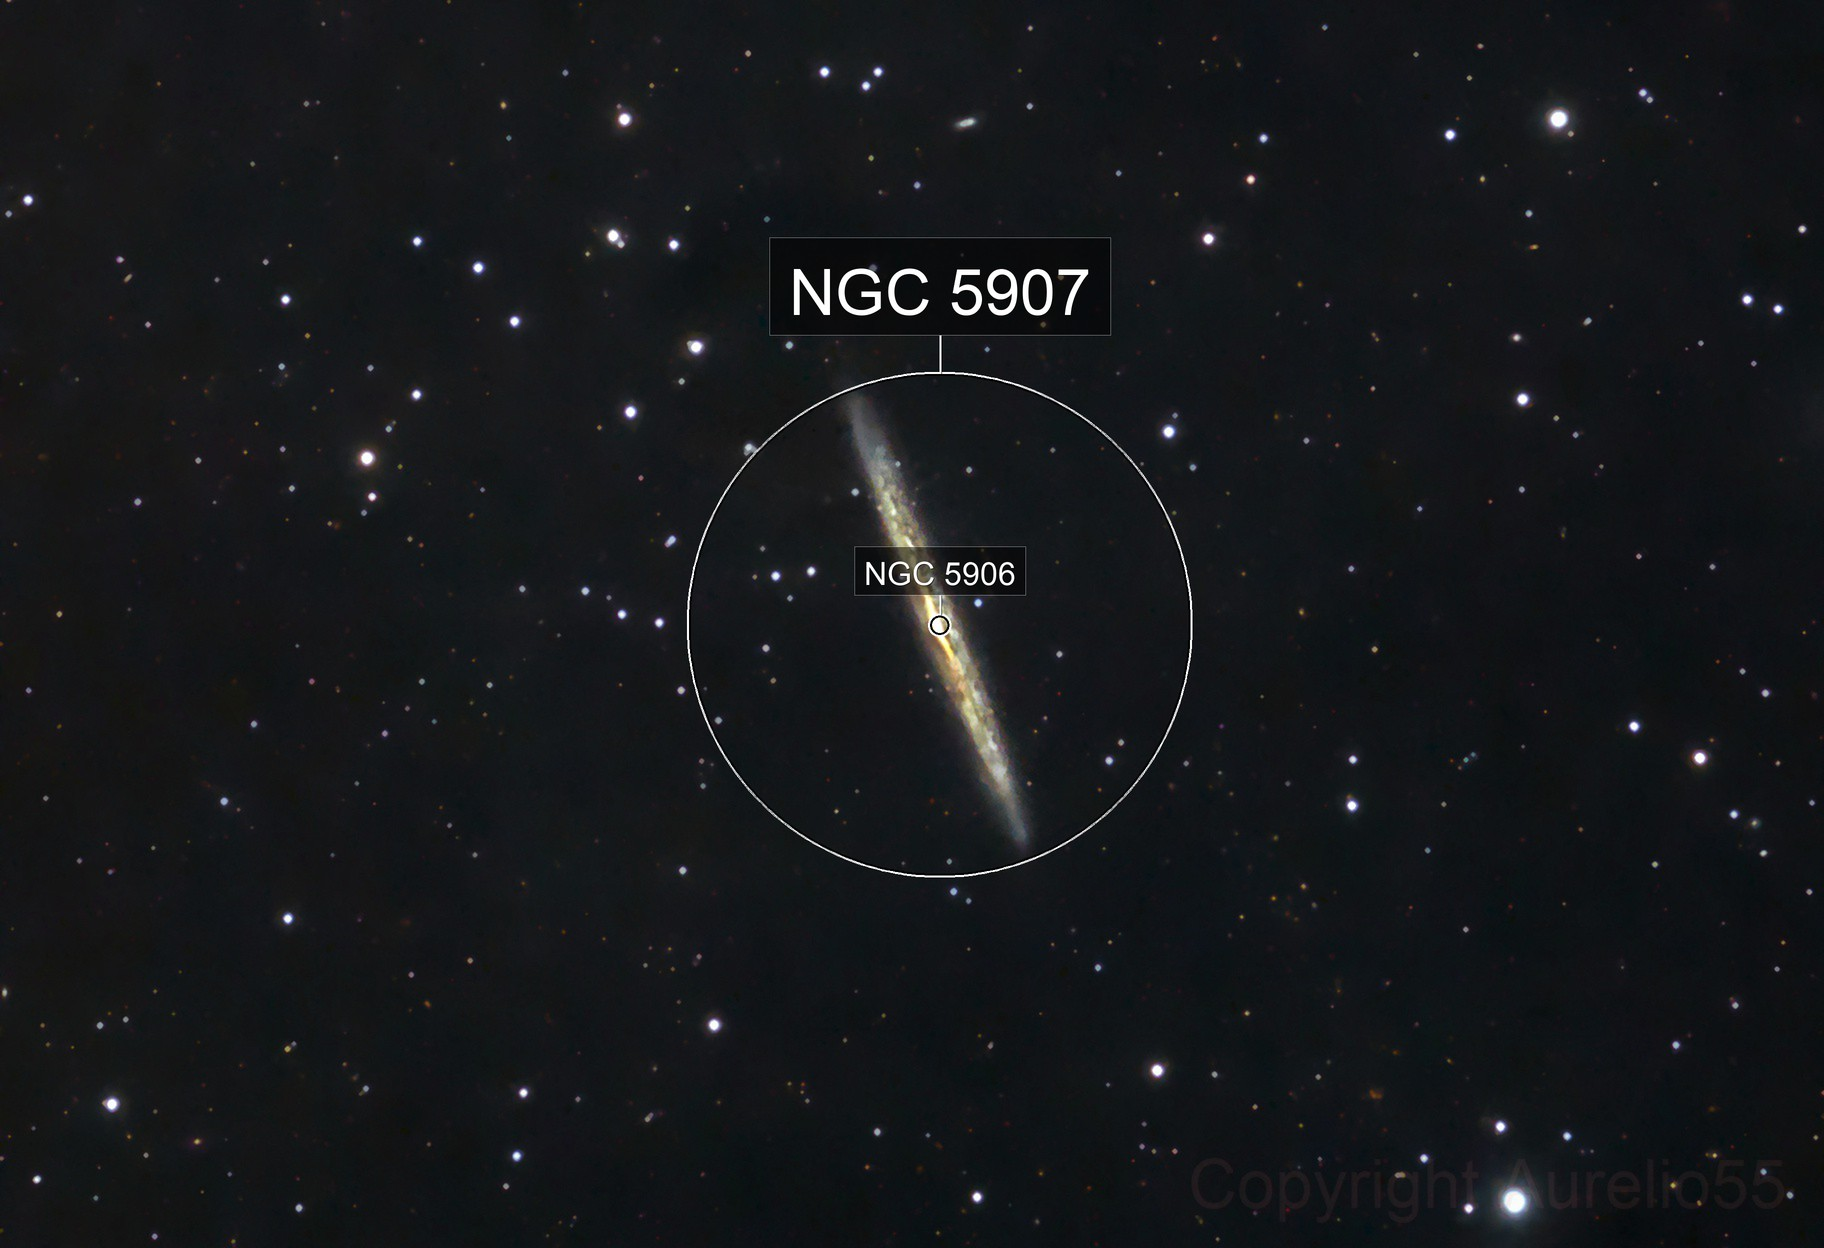 NGC 5907 in Draco